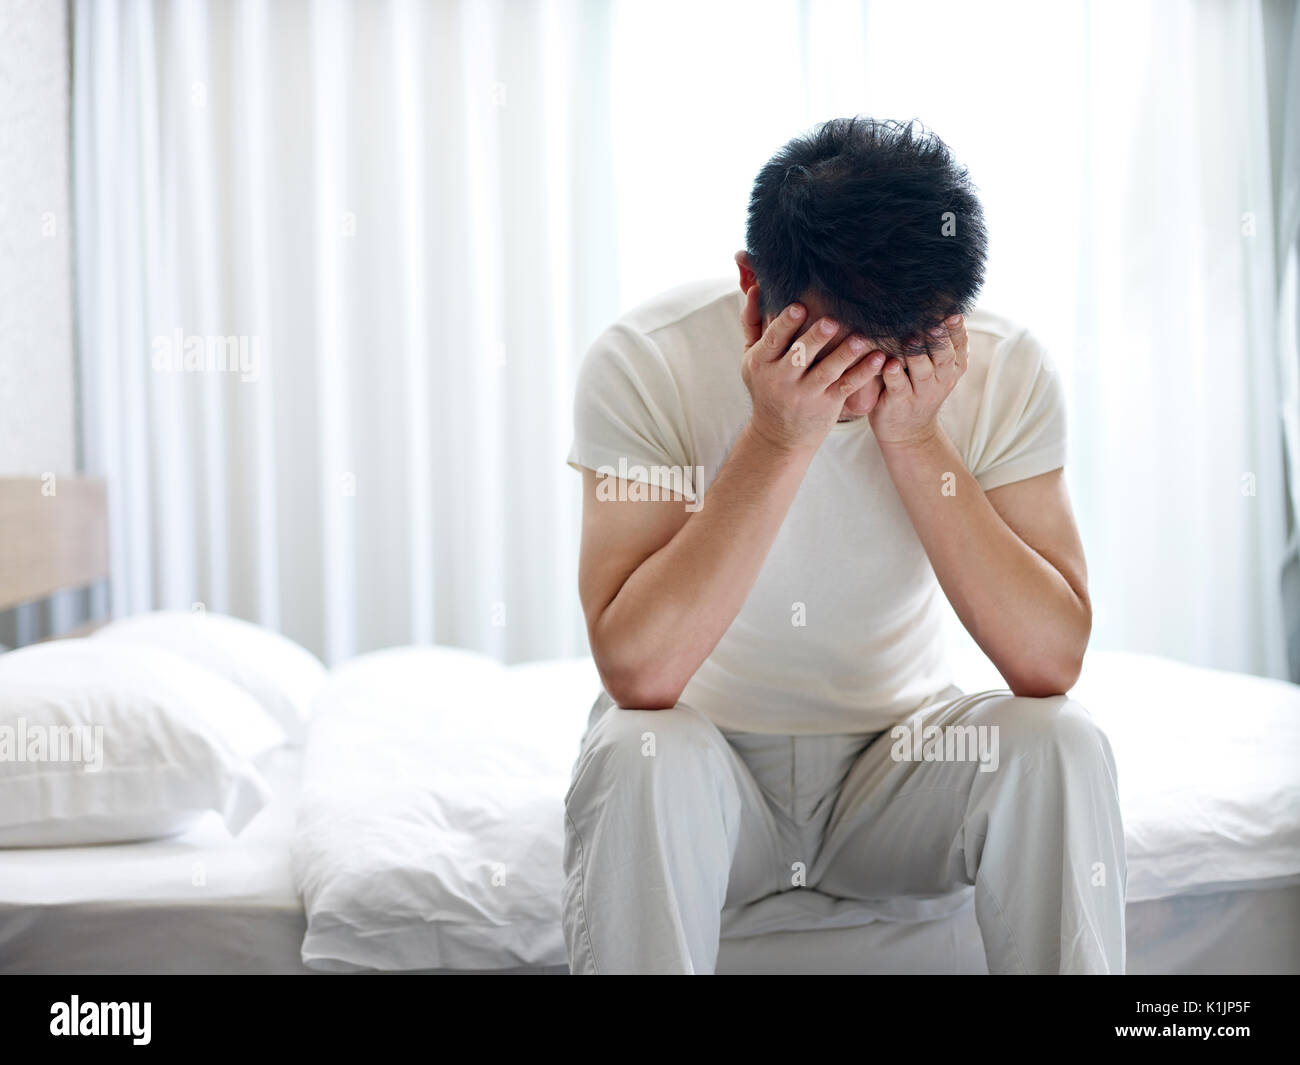 asian man suffering from insomnia sitting on bed head down covering face with hands. - Stock Image